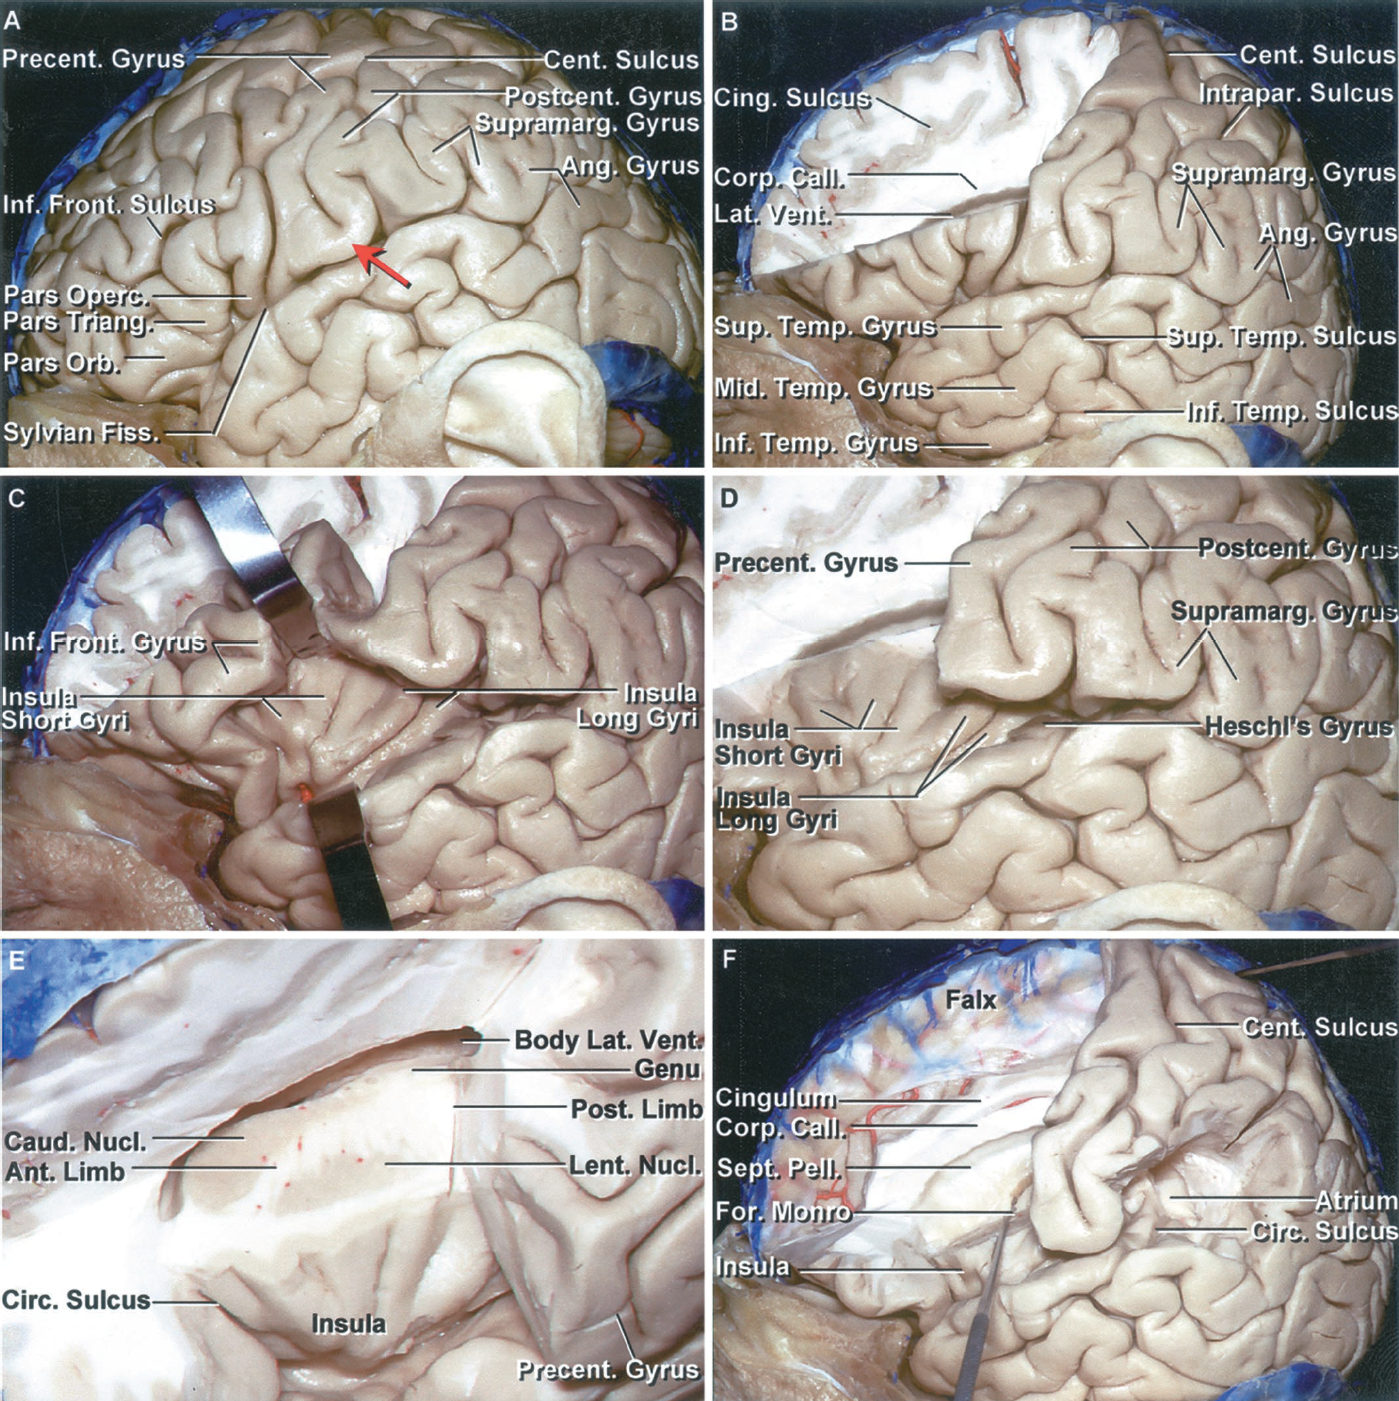 Figure 1.2 A-F. Stepwise dissection of the left cerebral hemisphere. A, the inferior frontal gyrus is composed of the pars orbitalis, pars opercularis, and parstriangularis. The precentral gyrus borders the sylvian fissure behind the pars opercularis. The sylvian fissure extends backward and turns up into the supramarginal gyrus at its posterior end. The lower part of the postcentral gyrus is positioned in front of the anterior bank of the supramarginal gyrus. The posterior bank of the supramarginal gyrus is continuous with the superior temporal gyrus. The central sulcus ascends between the pre-and postcentral gyri. There is commonly a gyral bridge (red arrow) connecting the pre- and postcentral gyri below the lower end of the central sulcus, so that the central sulcus does not open directly into the sylvian fissure. Often, with the limited craniotomy opening, the whole sylvian fissure is not exposed to aid in identification of the pre- and postcentral gyri and the central sulcus. The position of the lower end of the pre- and postcentral gyri can be approximated by identifying the pars opercularis just in front of the precentral gyrus and the anterior bank of the supramarginal gyrus just in back of the postcentral sulcus. The angular gyrus wraps around the upturned posterior end of the superior temporal sulcus. B, the part of the frontal lobe above the inferior frontal gyrus and in front of the precentral sulcus has been removed while preserving a thin layer of the medial part of the hemisphere. The inferior frontal sulcus is located on the convexity at the deep level of the lower margin of the corpus callosum and roof of the frontal horn. The gray matter of the cingulate sulcus is exposed above the corpus callosum. C, the opercular lips have been retracted to expose the insula, which is defined at its outer margin by the circular or limiting sulcus. The short gyri are located anteriorly and the long gyri posteriorly. D, enlarged view with the brain in front of the precentral gyrus removed. The insular gyri radiate upward and backward from the anteroinferior angle situated just lateral to the limen insulae. The short gyri are located deep to the pars triangularis and opercularis. Heschl's gyrus, the most anterior of the transverse temporal gyri, faces the lower end of the postcentral gyrus across the sylvian fissure. E, anterosuperior view of the central core of the hemisphere located deep to the insulae. The lentiform nucleus is exposed deep to the insula and is separated from the caudate nucleus by the anterior limb of the internal capsule. The circular sulcus surrounds the insula. F, the supramarginal gyrus has been removed to show its location superficial to the atrium. The posterior margins of the insula and circular sulcus are positioned superficial to the anterior edge of the atrium. The pre- and postcentral gyri are located lateral to the body of the ventricle and the splenium of the corpus callosum. The foramen of Monro is located deep to a point on the pars opercularis approximately 1 cm above the sylvian fissure and deep to the midlevel of the short gyri of the insula.